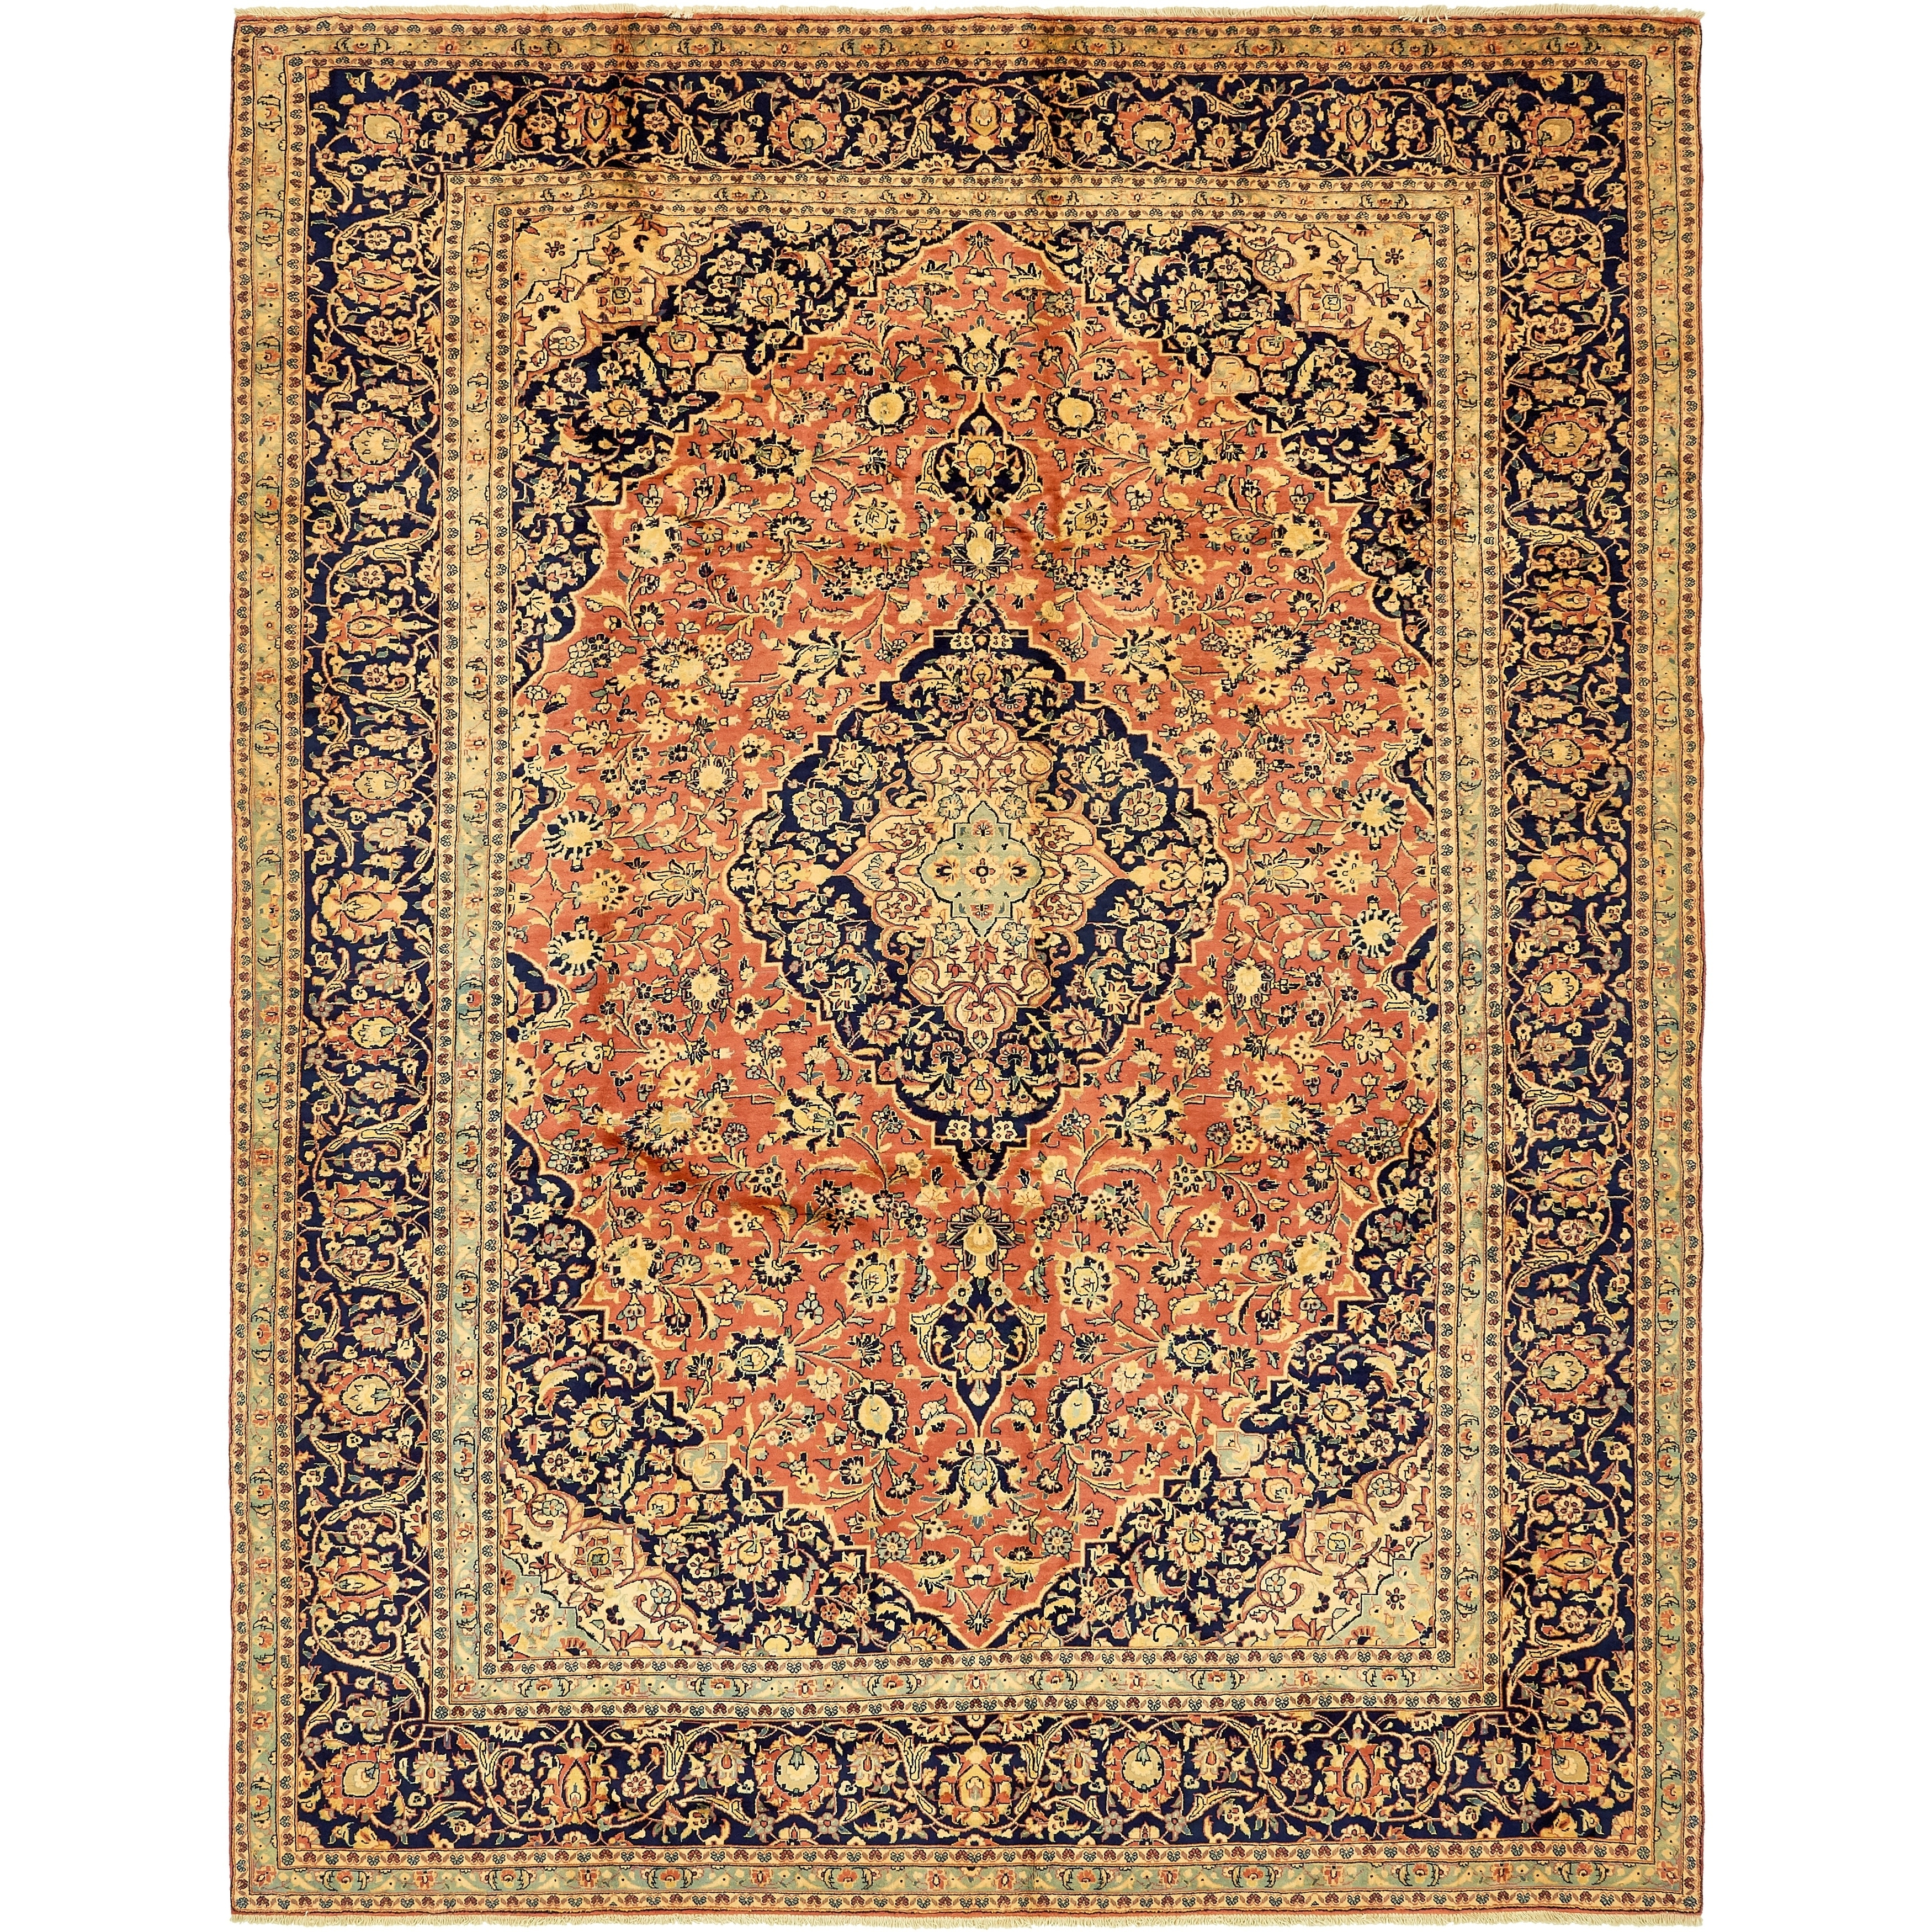 Hand Knotted Kashan Semi Antique Wool Area Rug - 9' 8 x 12' 9 (Pink - 9' 8 x 12' 9)